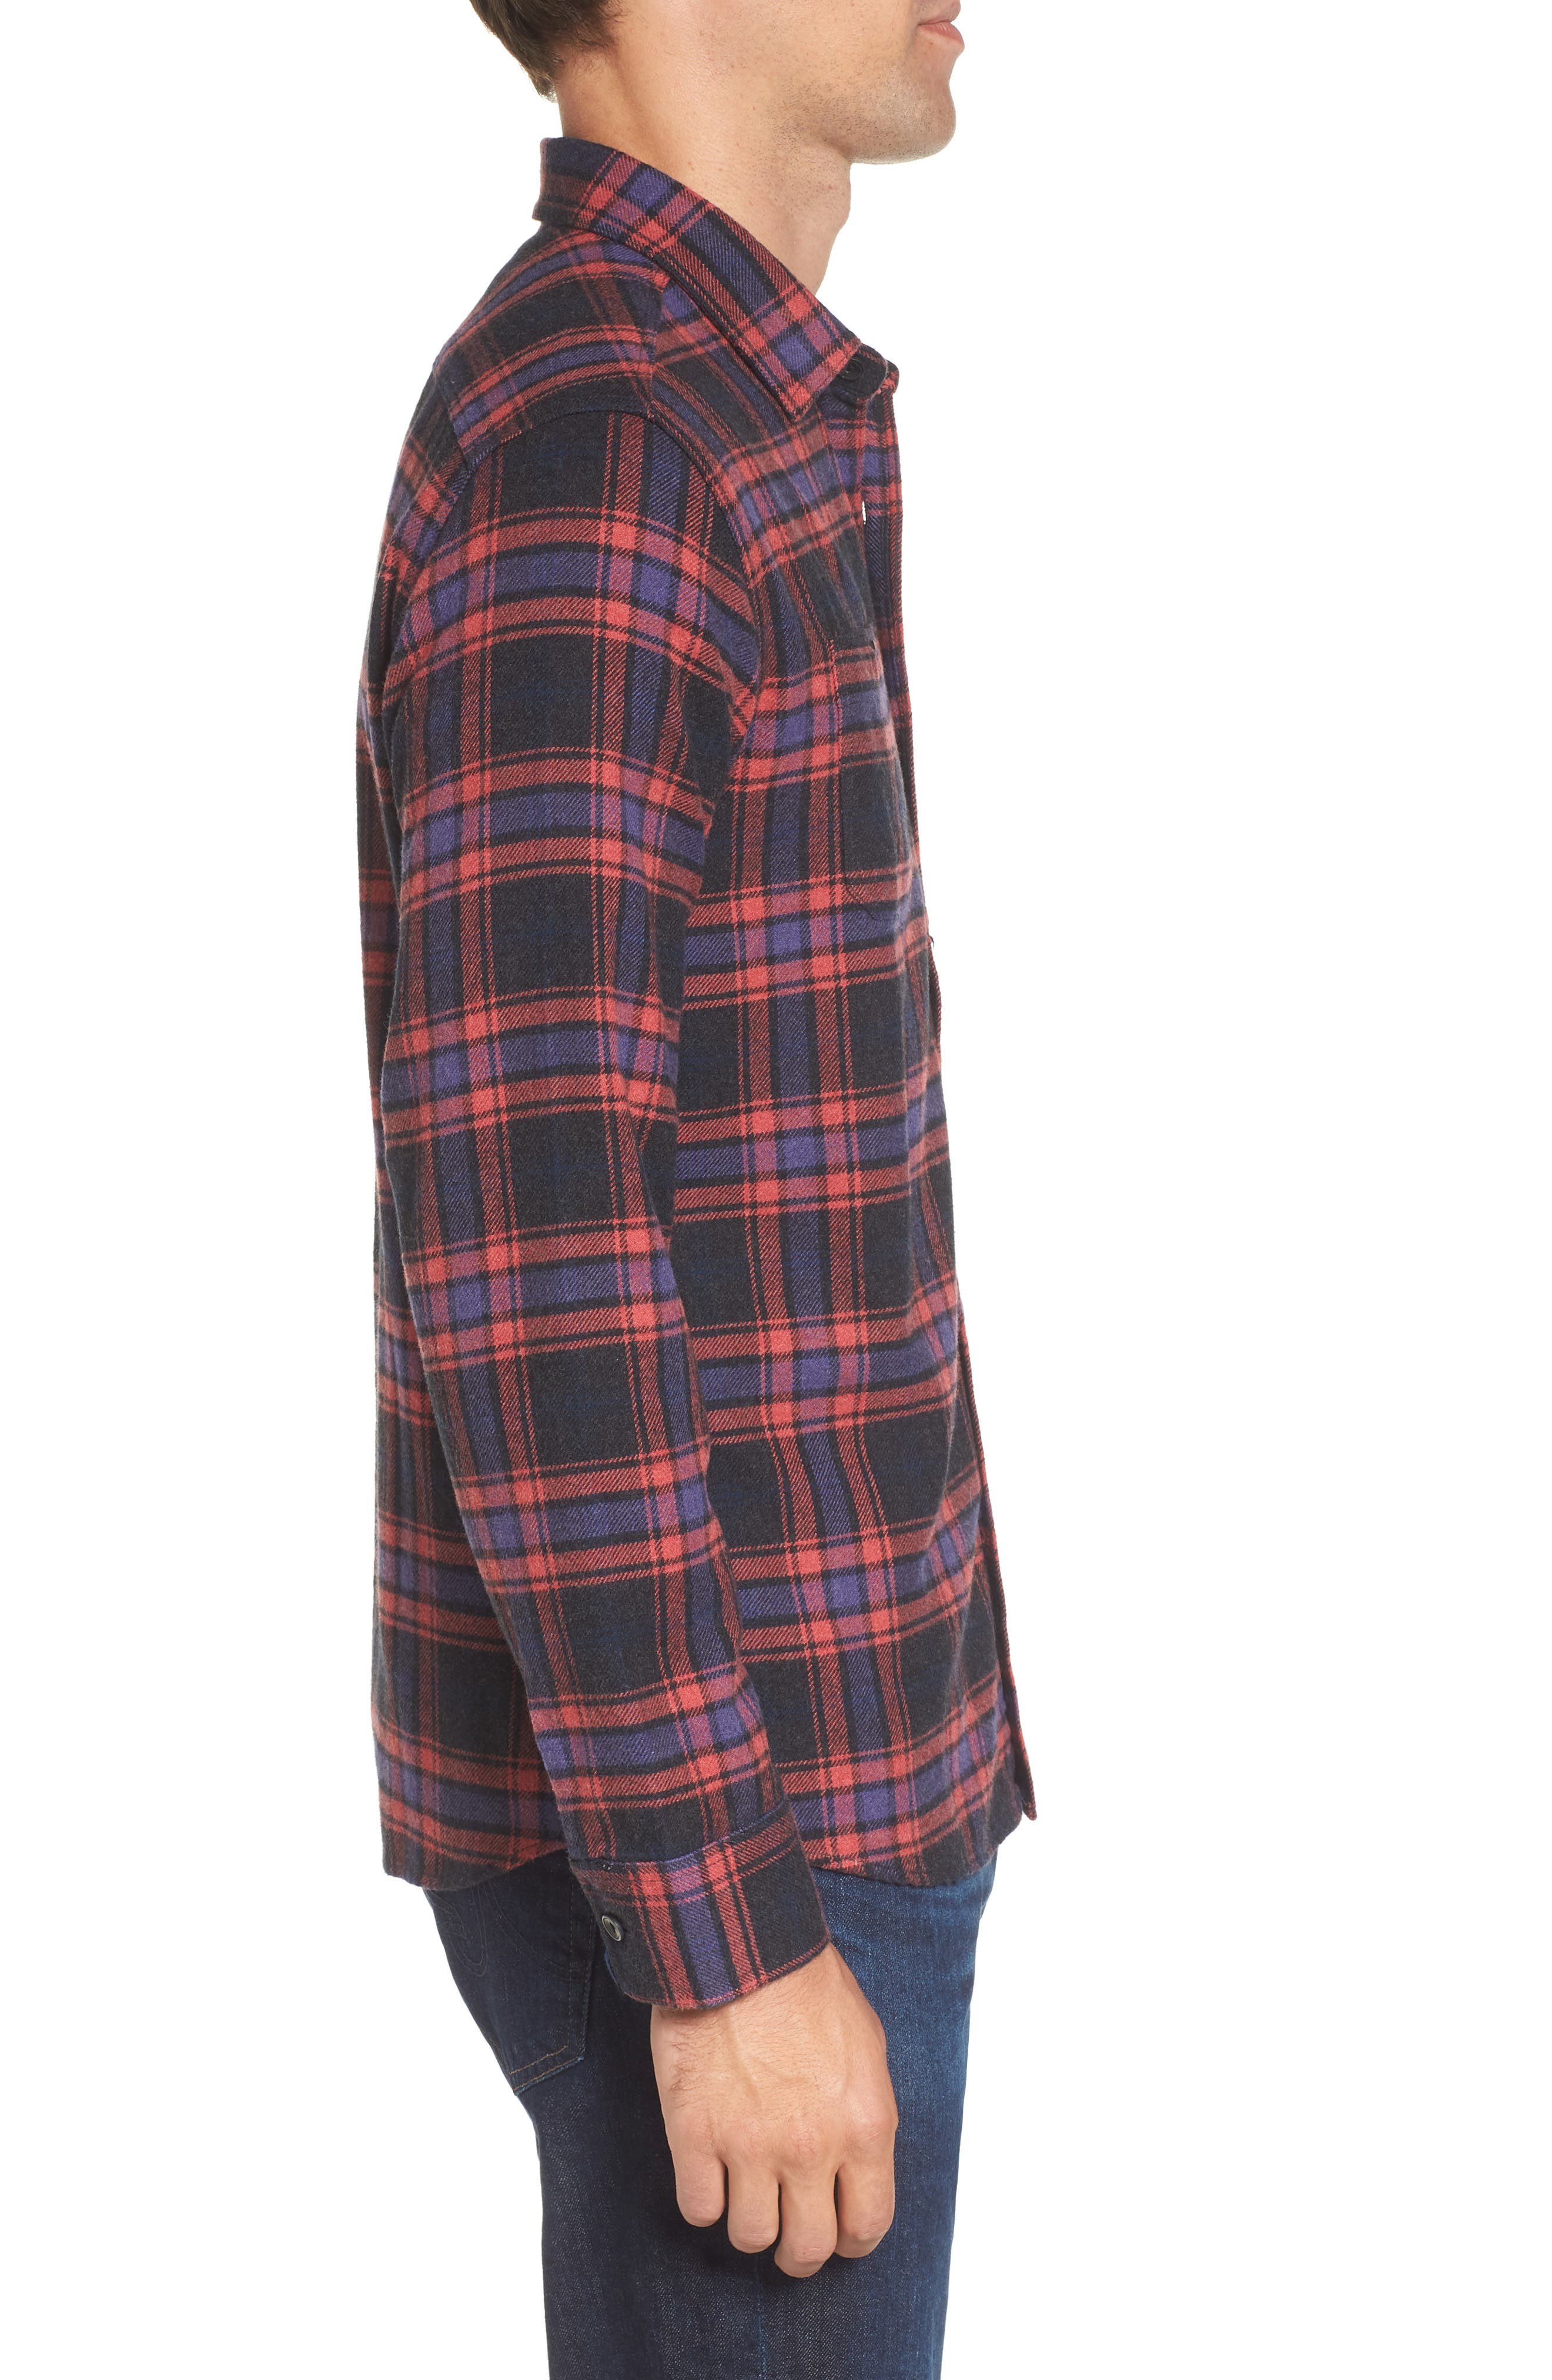 Chaucer Heritage Flannel Shirt,                             Alternate thumbnail 3, color,                             Charcoal Red